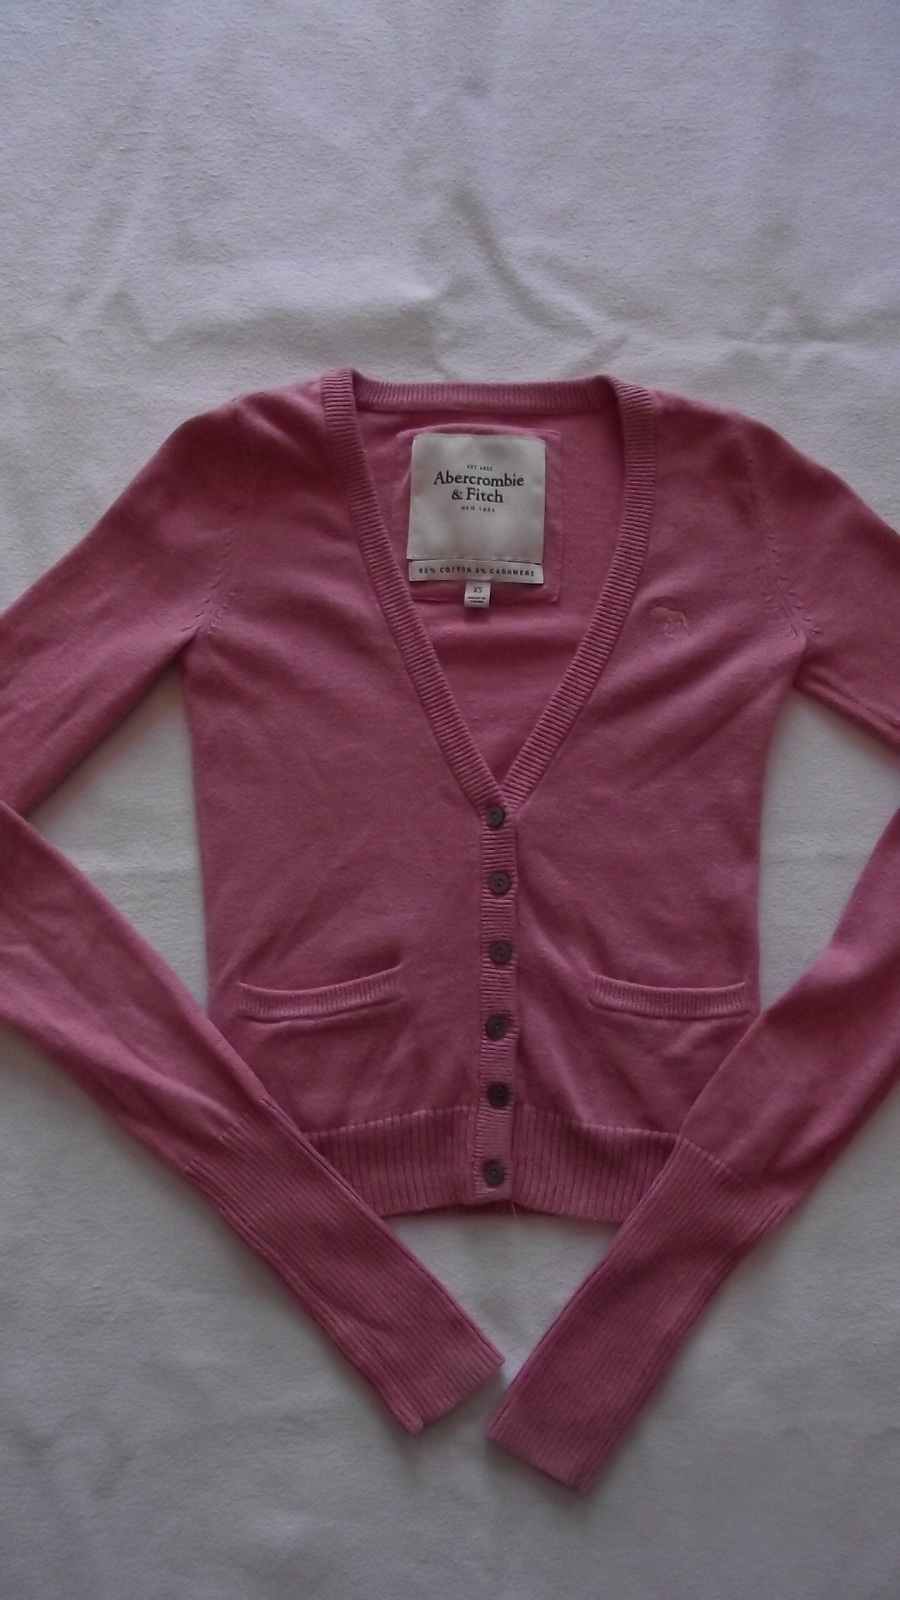 Abercrombie & Fitch women's/juniors xsmall Cartigan sweater image 4